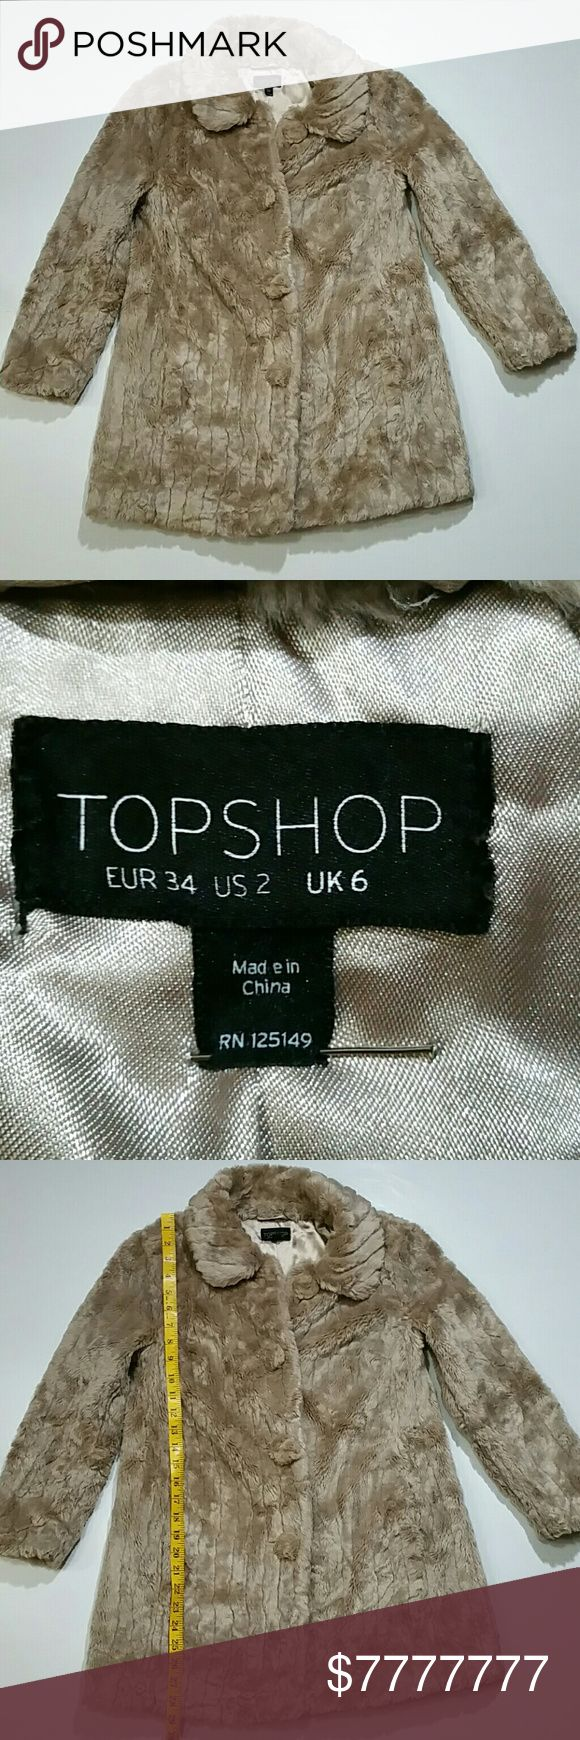 50% on 3+ Topshop Size 2 Tan Vegan Fur Coat Topshop Tan Vegan Fur Coat,  Gorgeous soft Topshop fur coat with fur buttons. 2 angle pockets. Outside is in great condition, some light pilling scratching on the interior satin. (2-19) Topshop Jackets & Coats